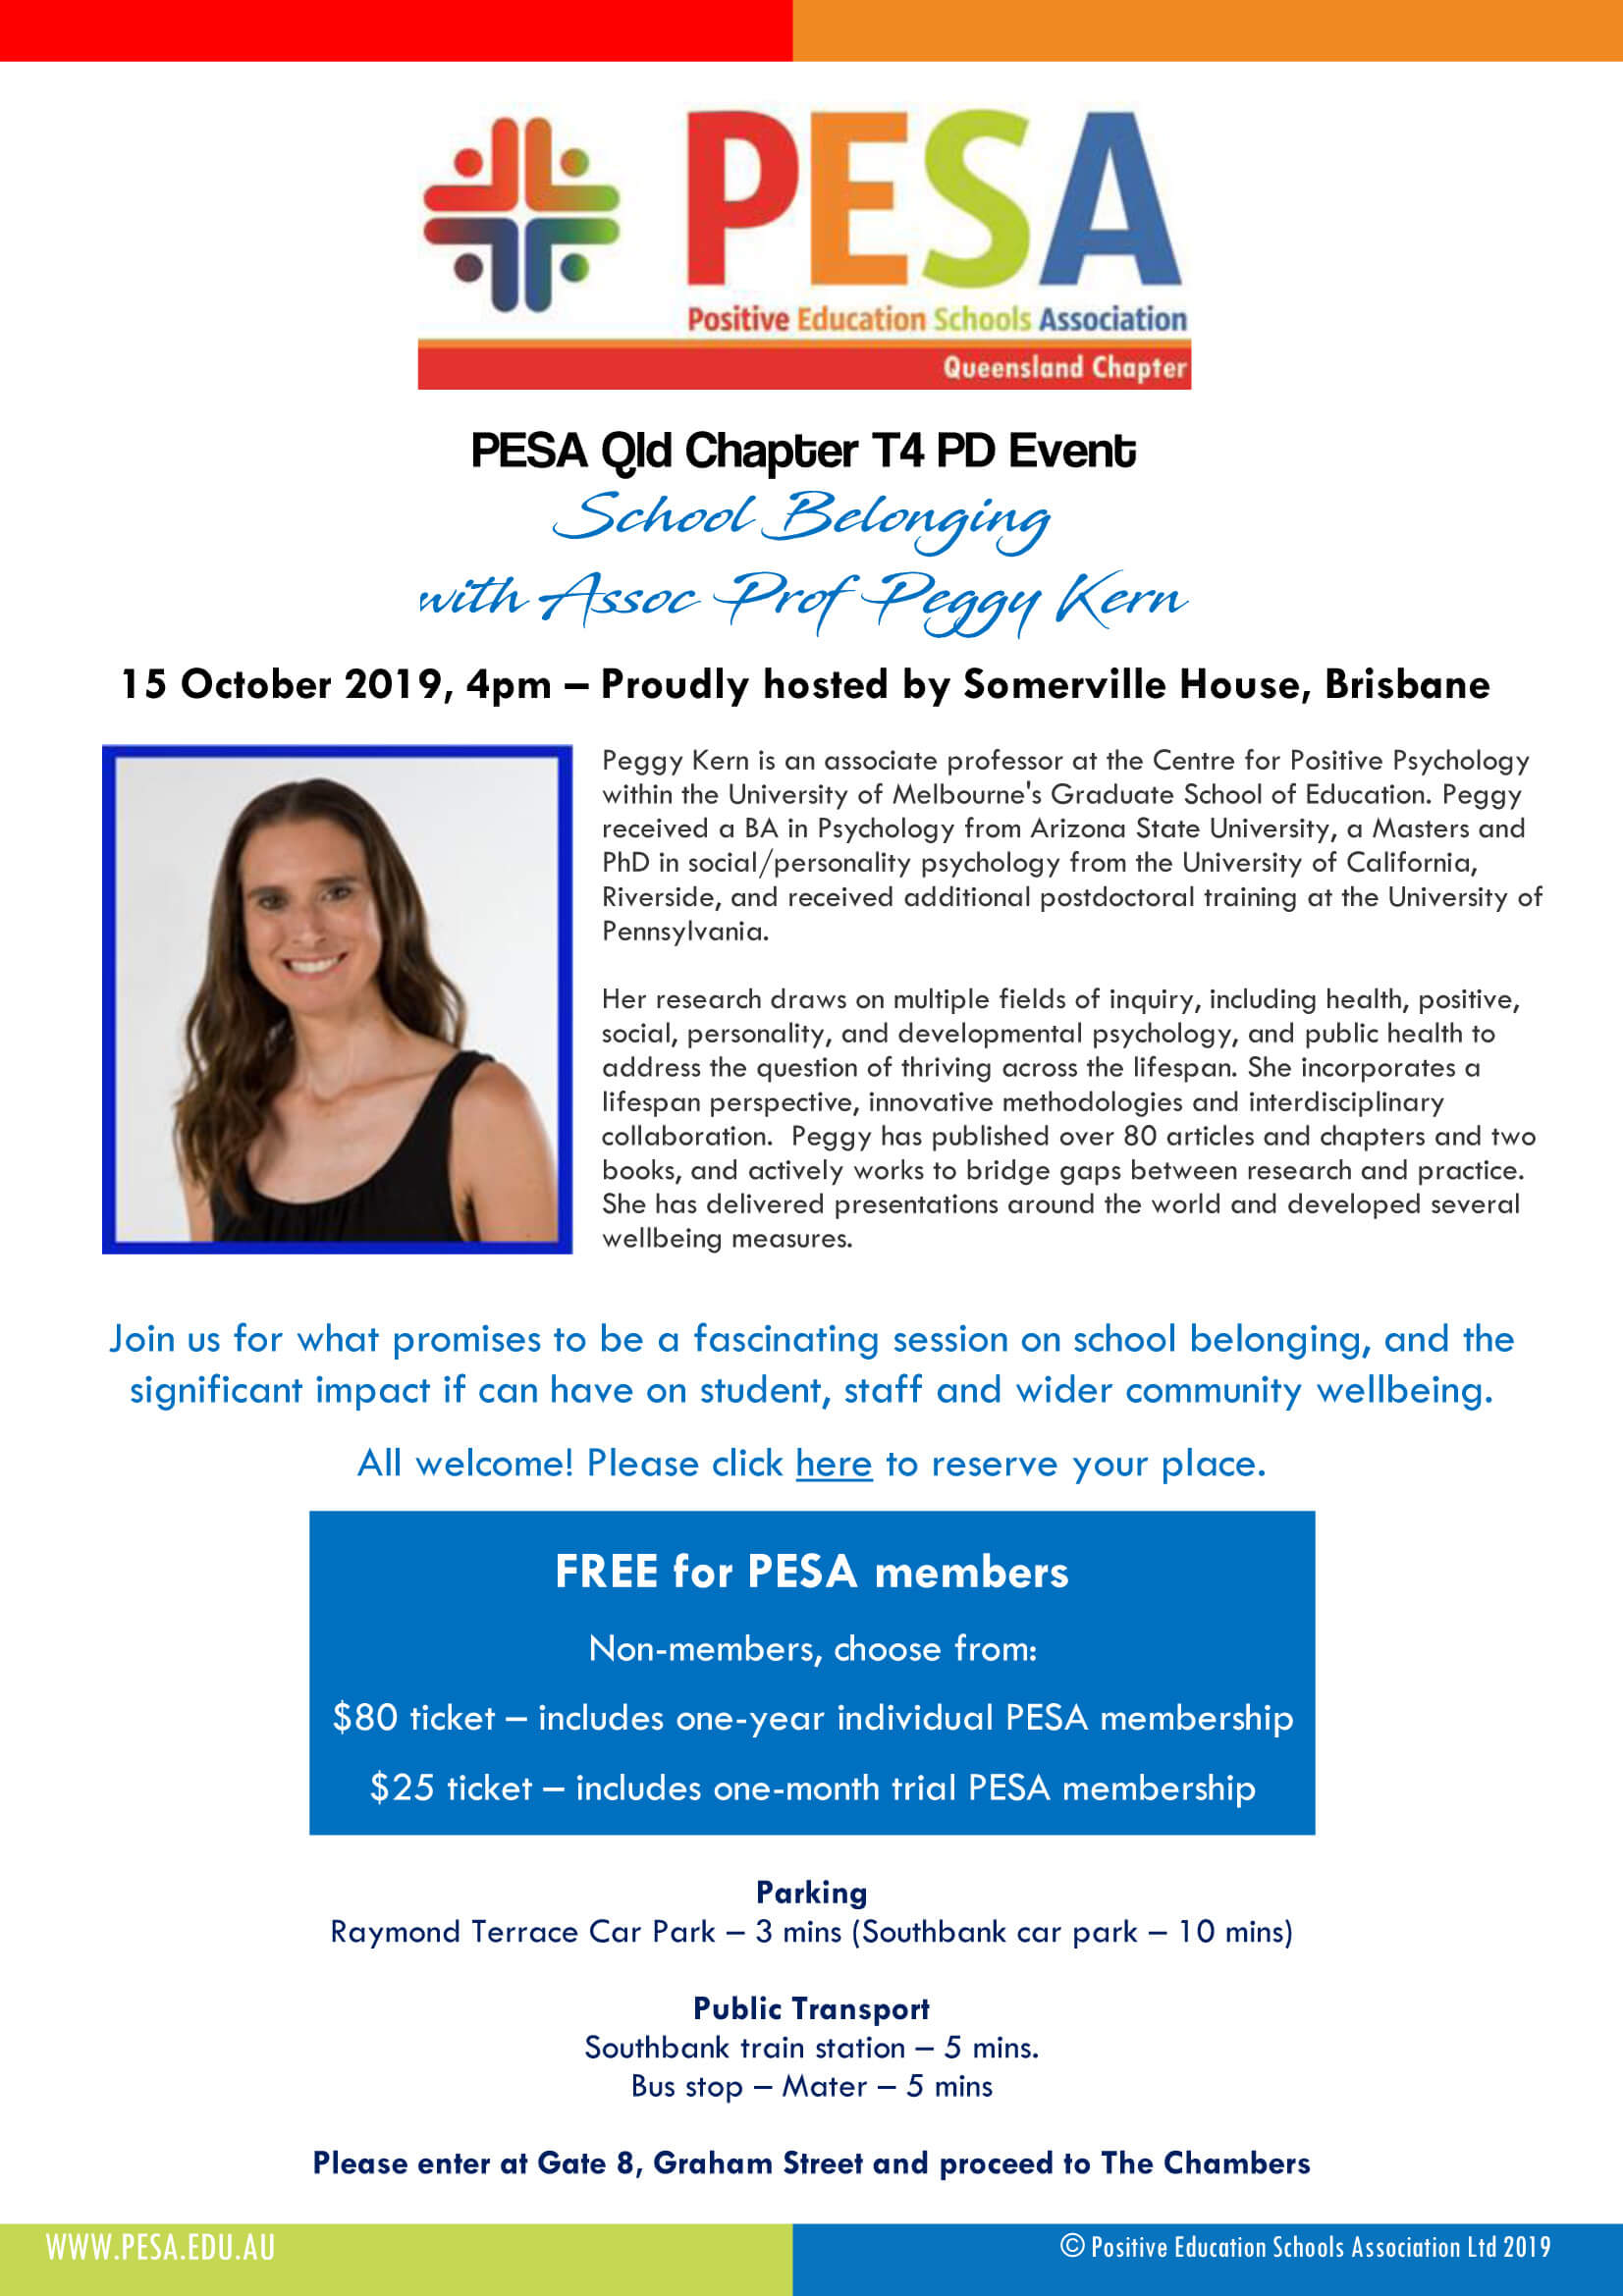 PESA Qld Chapter flyer T4 2019-1